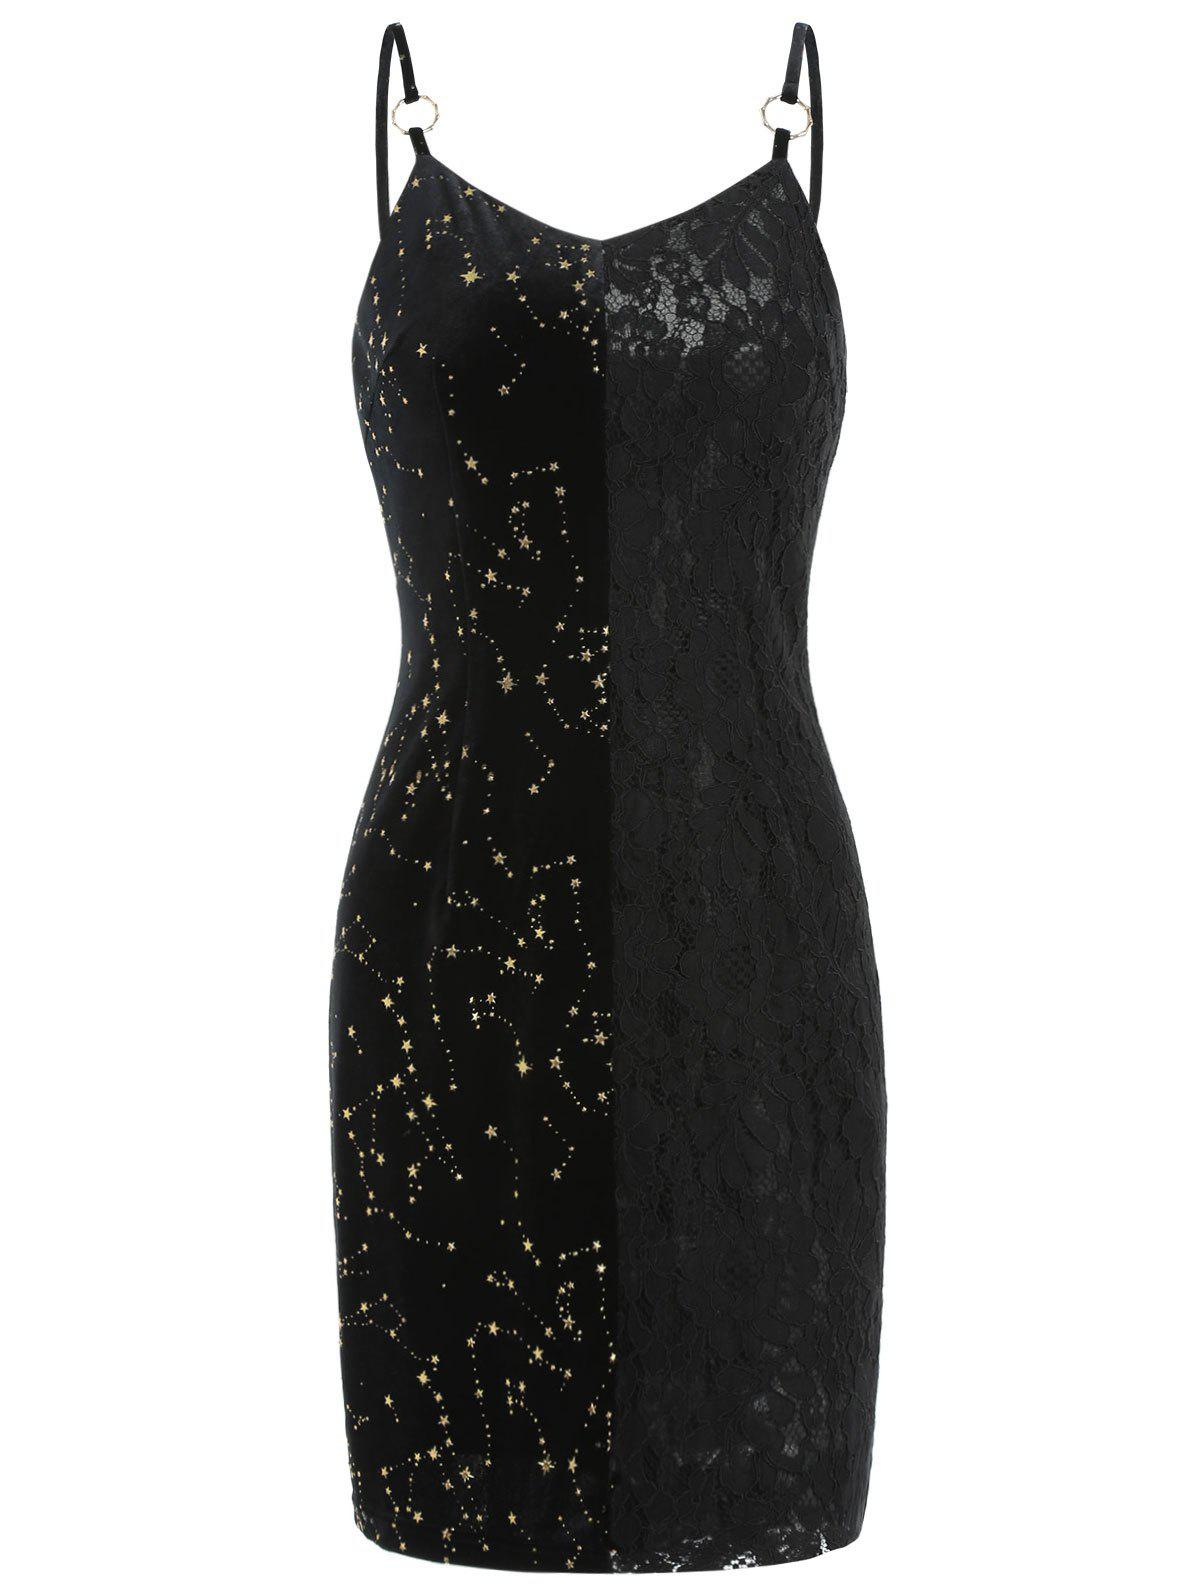 Chic Velvet Star Lace Panel Mini Dress